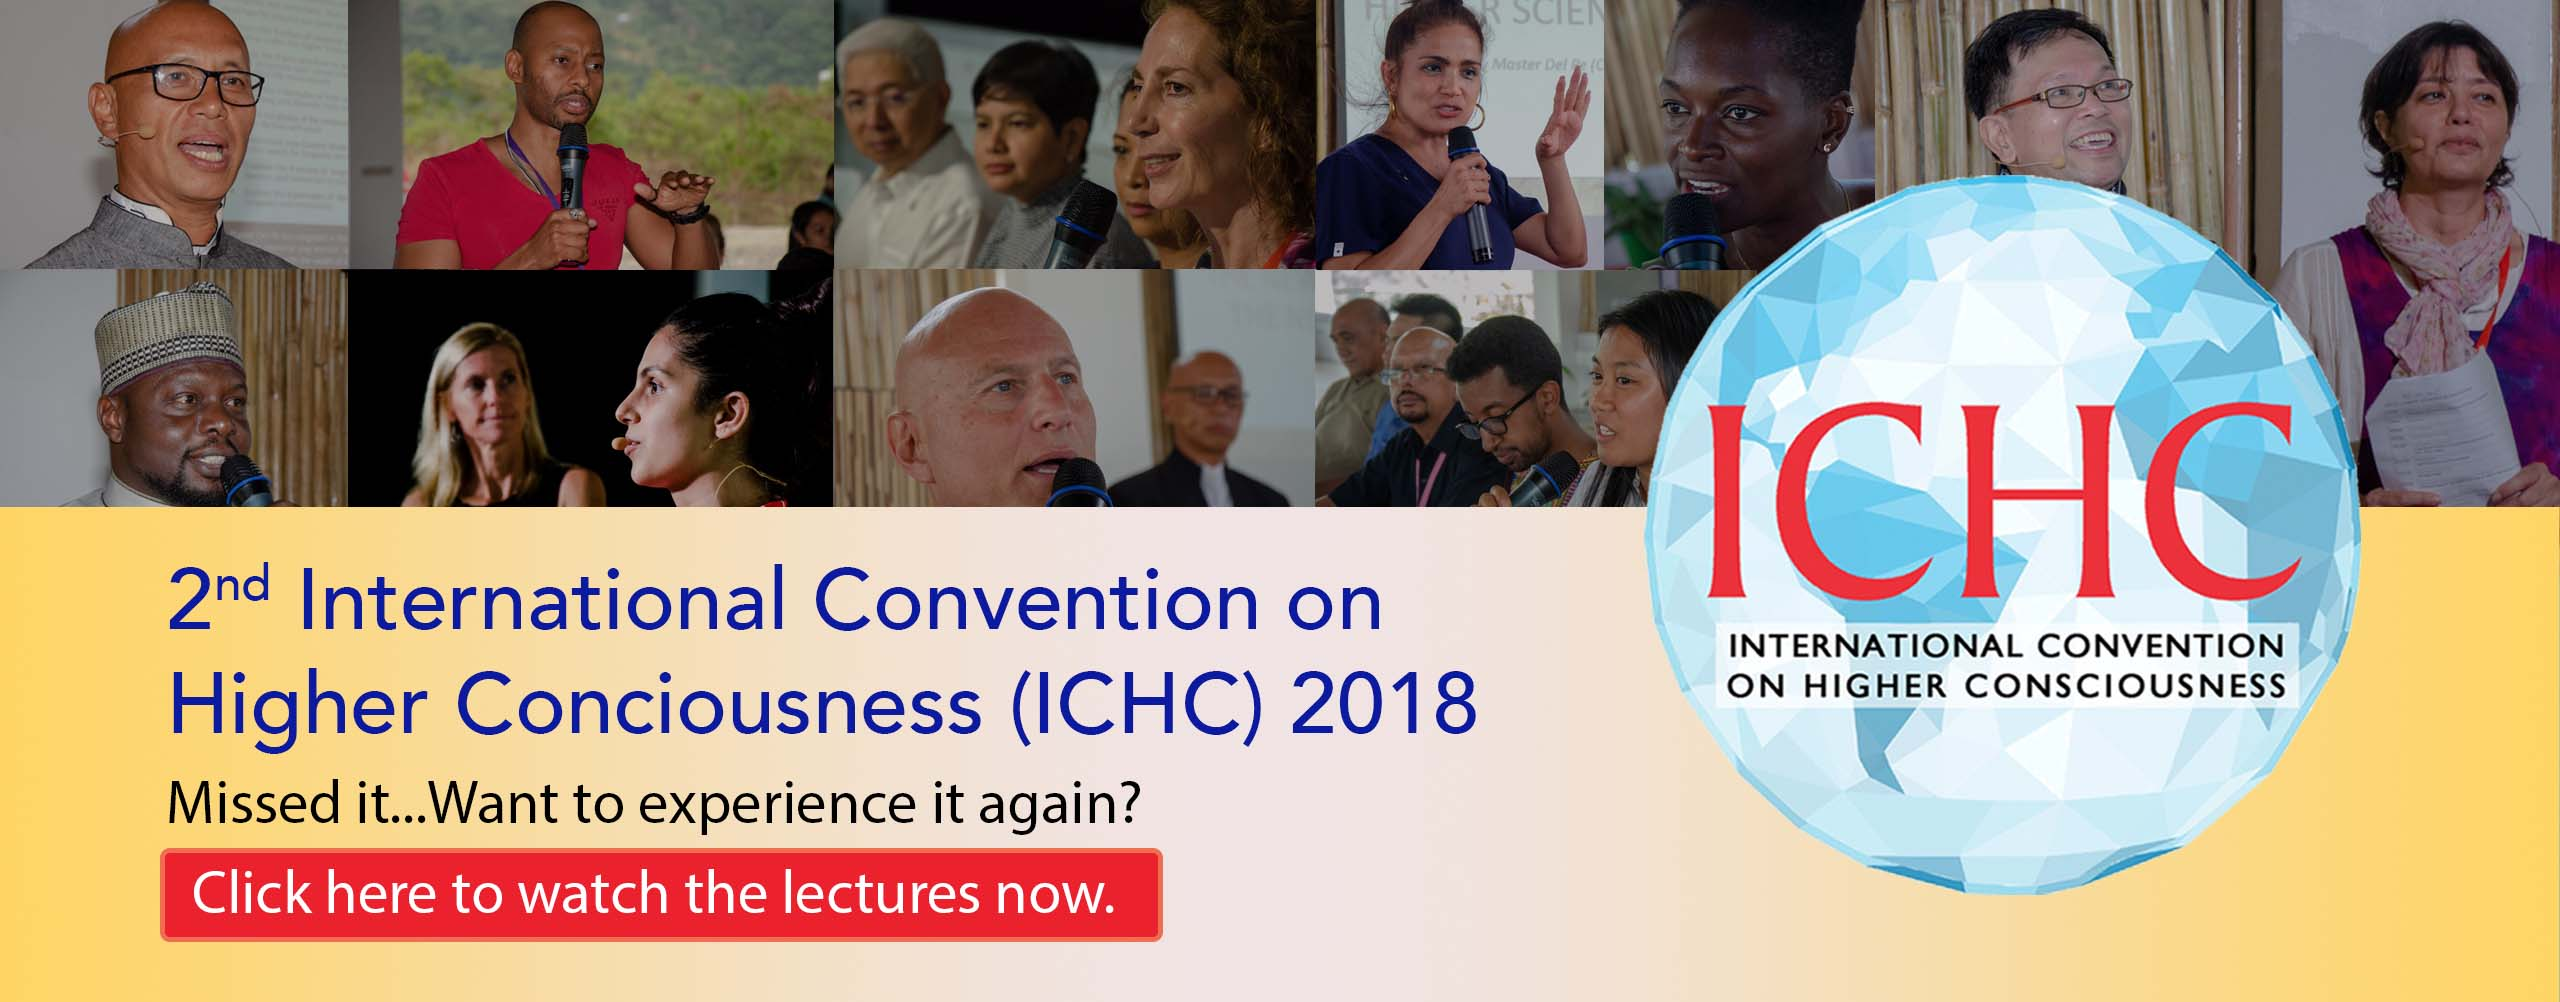 2nd ICHC 2018 Lectures